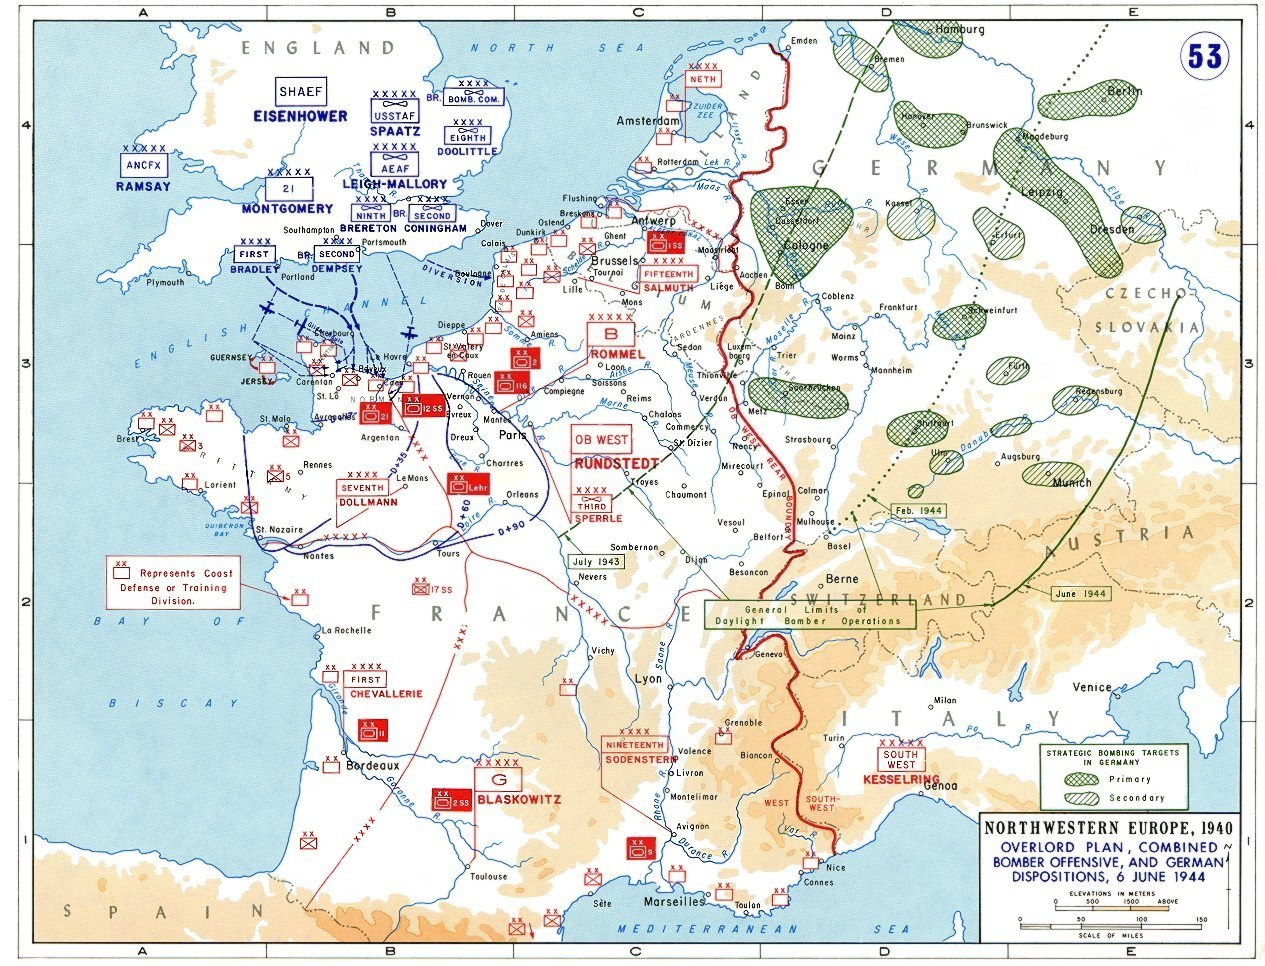 Normandy Landings Map The story of D Day, in five maps   Vox